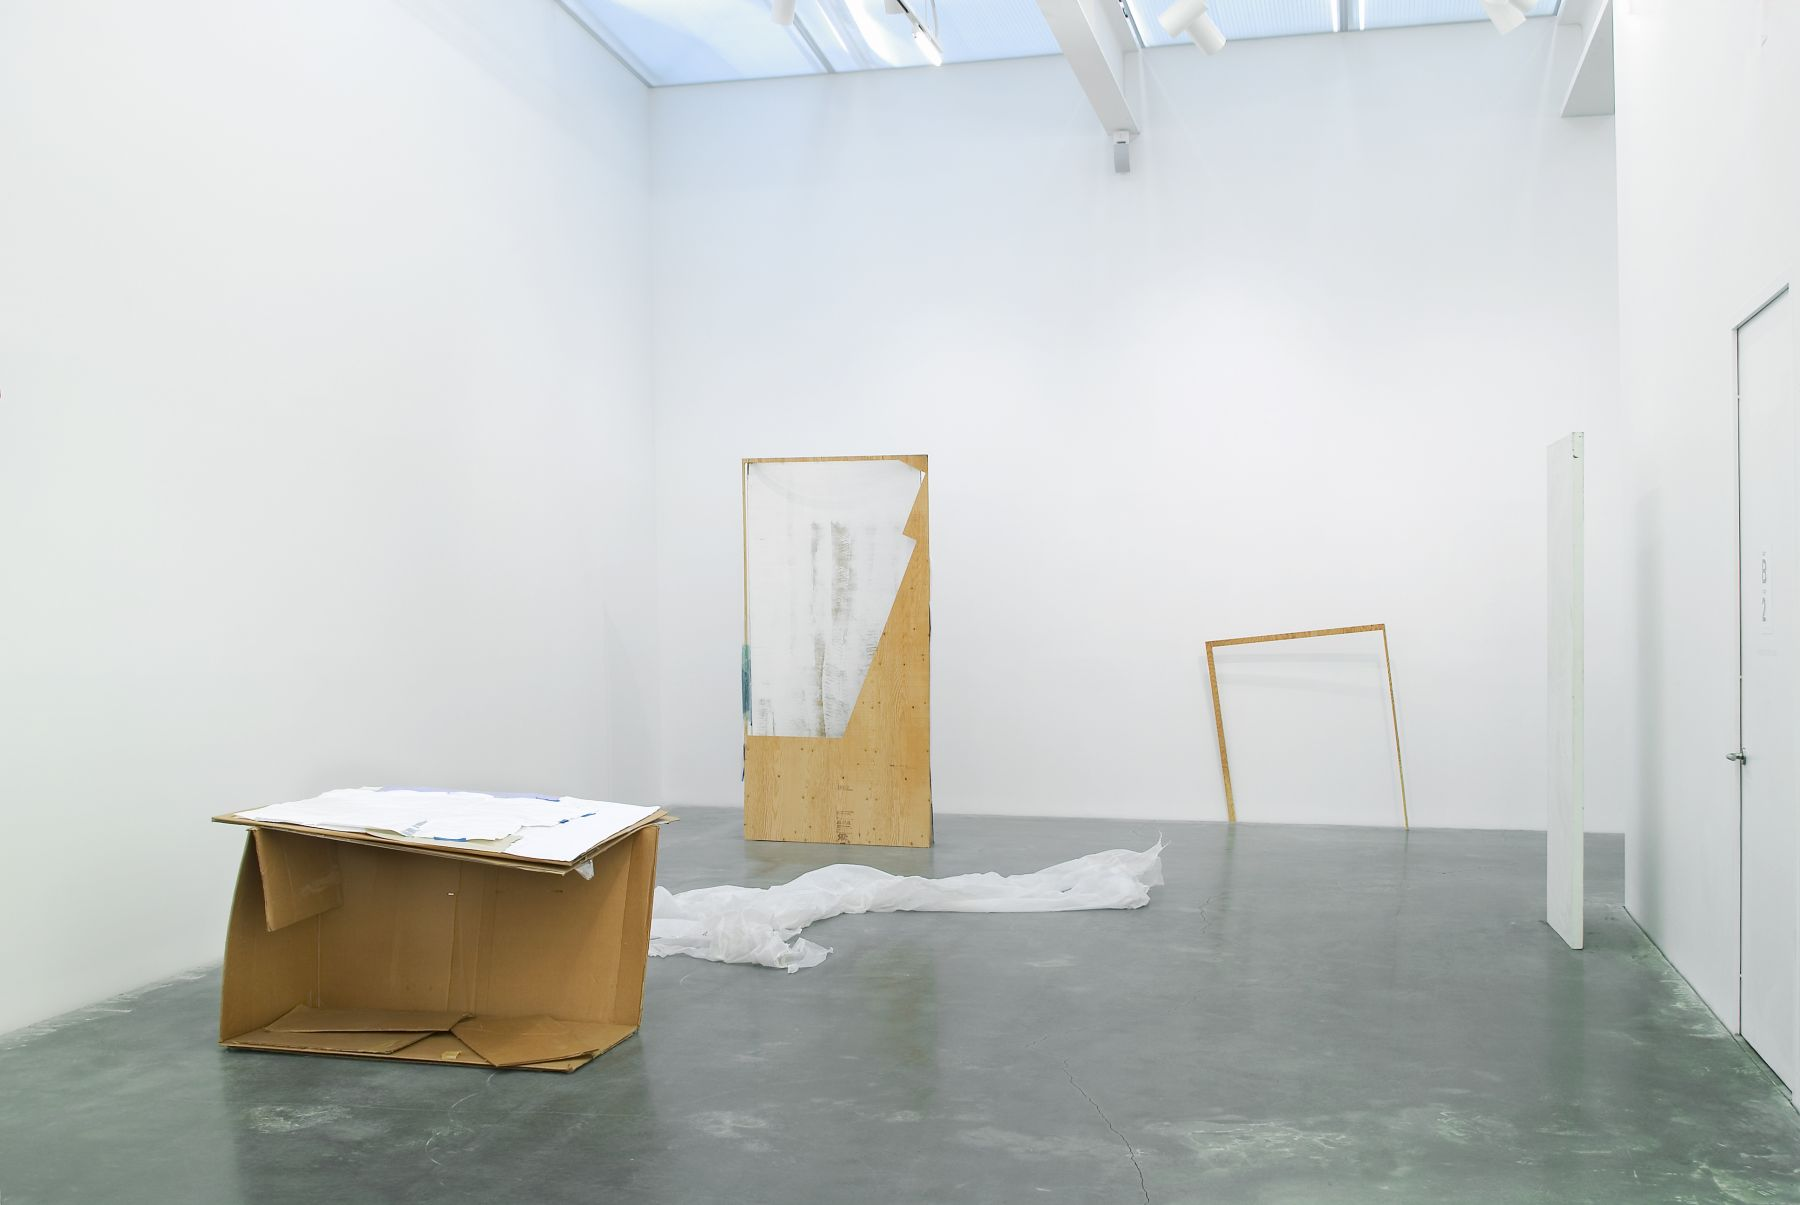 Gedi Sibony The Circumstance, the Illusion and Light Absorbed as Light, 2007 Wood, cardboard, paint, plastic, tape Dimensions variable